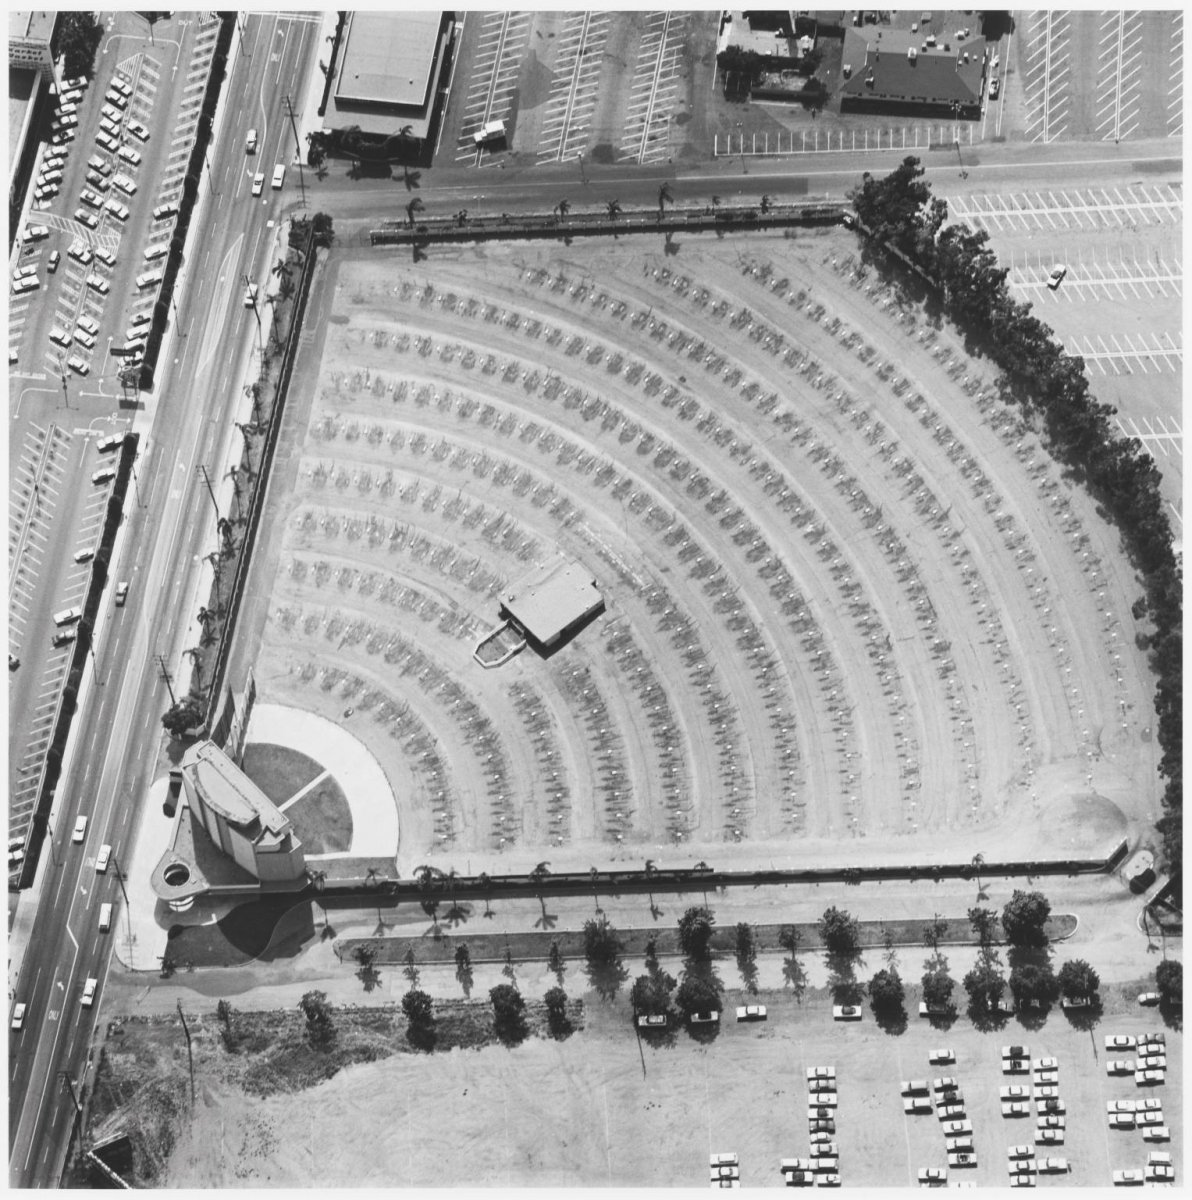 Gilmore Drive-in Theatre, 6201 W. 3rd St., Edward Ruscha, 1967 and printed 1999.jpg